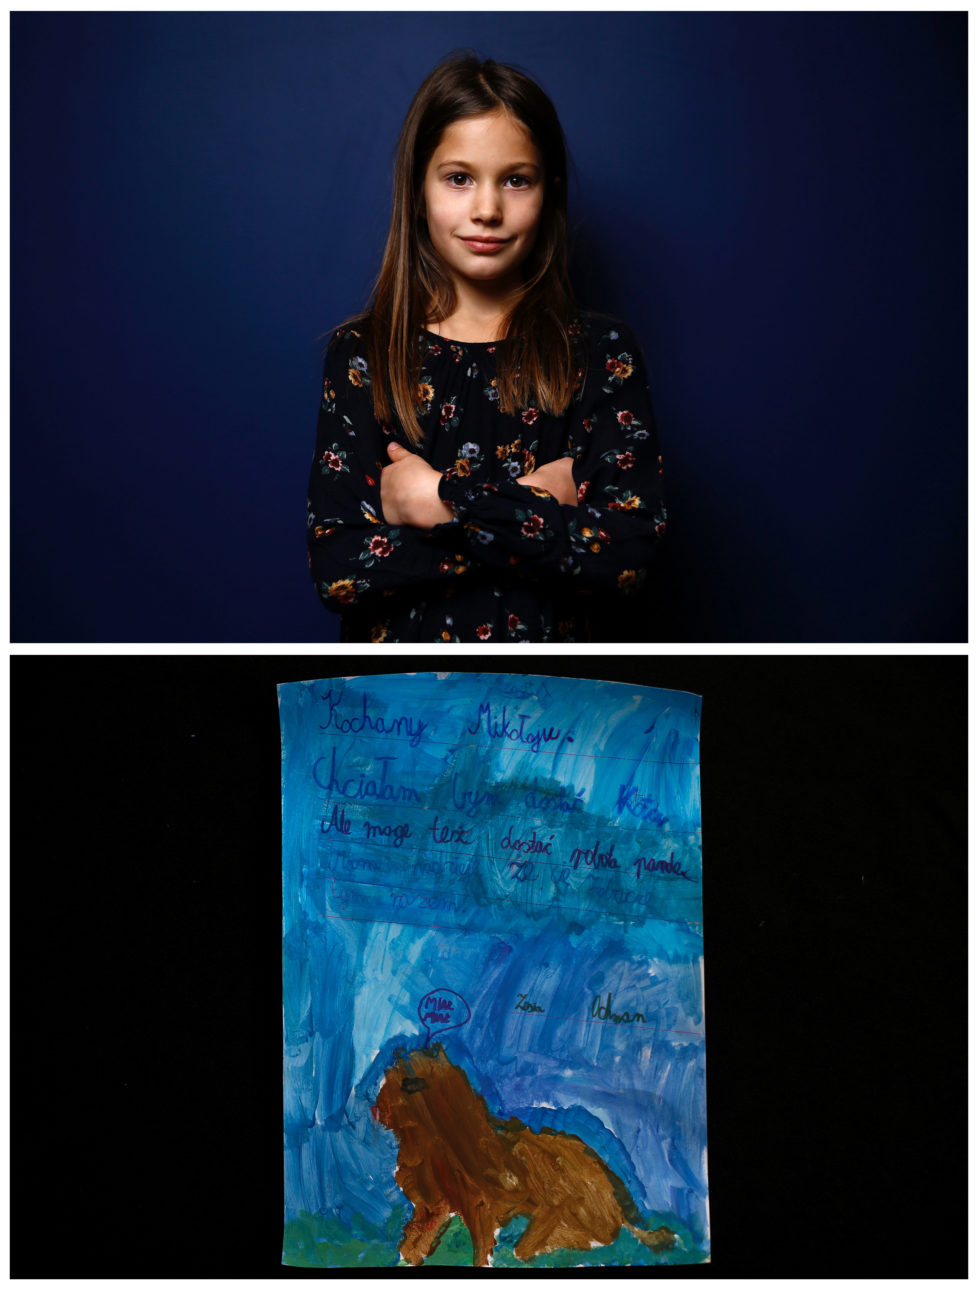 "A combination picture shows Zofia, 8, posing for a photograph November 23, 2016 (top) and her drawing of what she wants to get for Christmas from Santa, in Warsaw, Poland November 24, 2016. ""Dear Santa, I would like to get a cat. But a Robopanda would be ok too. I hope to see you this time. Zosia."" she wrote. Reuters photographers around the world asked children to draw what they wanted to receive from Santa for Christmas. REUTERS/Kacper Pempel SEARCH ""CHRISTMAS WISHES"" FOR THIS STORY. SEARCH ""WIDER IMAGE"" FOR ALL STORIES. TPX IMAGES OF THE DAY. - RTSV37I"